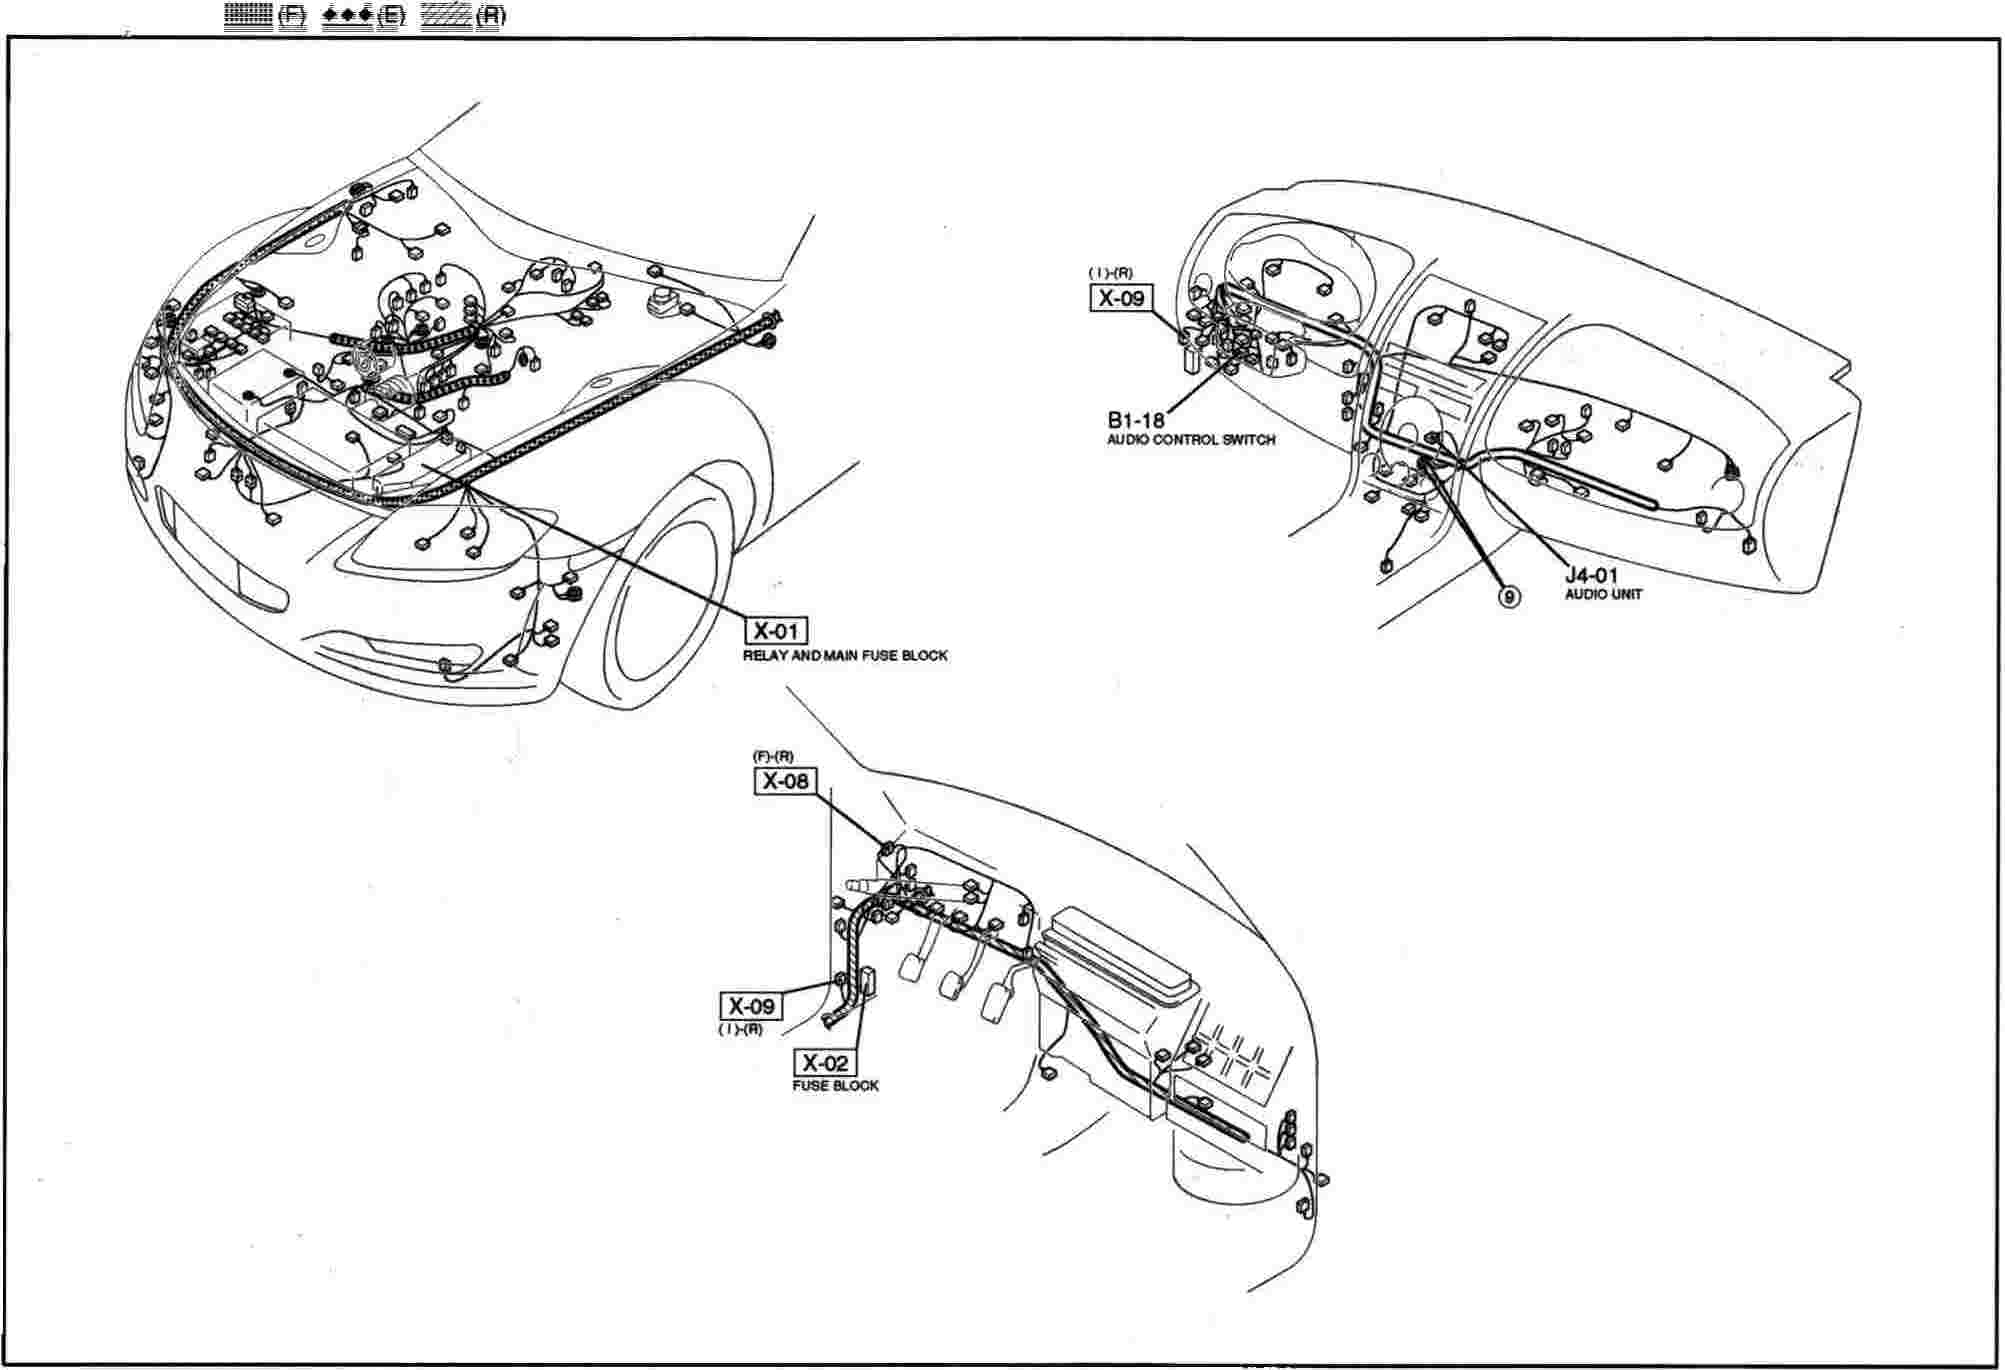 1986 mazda b2000 ignition wiring diagram rj 45 1987 carburetor imageresizertool com